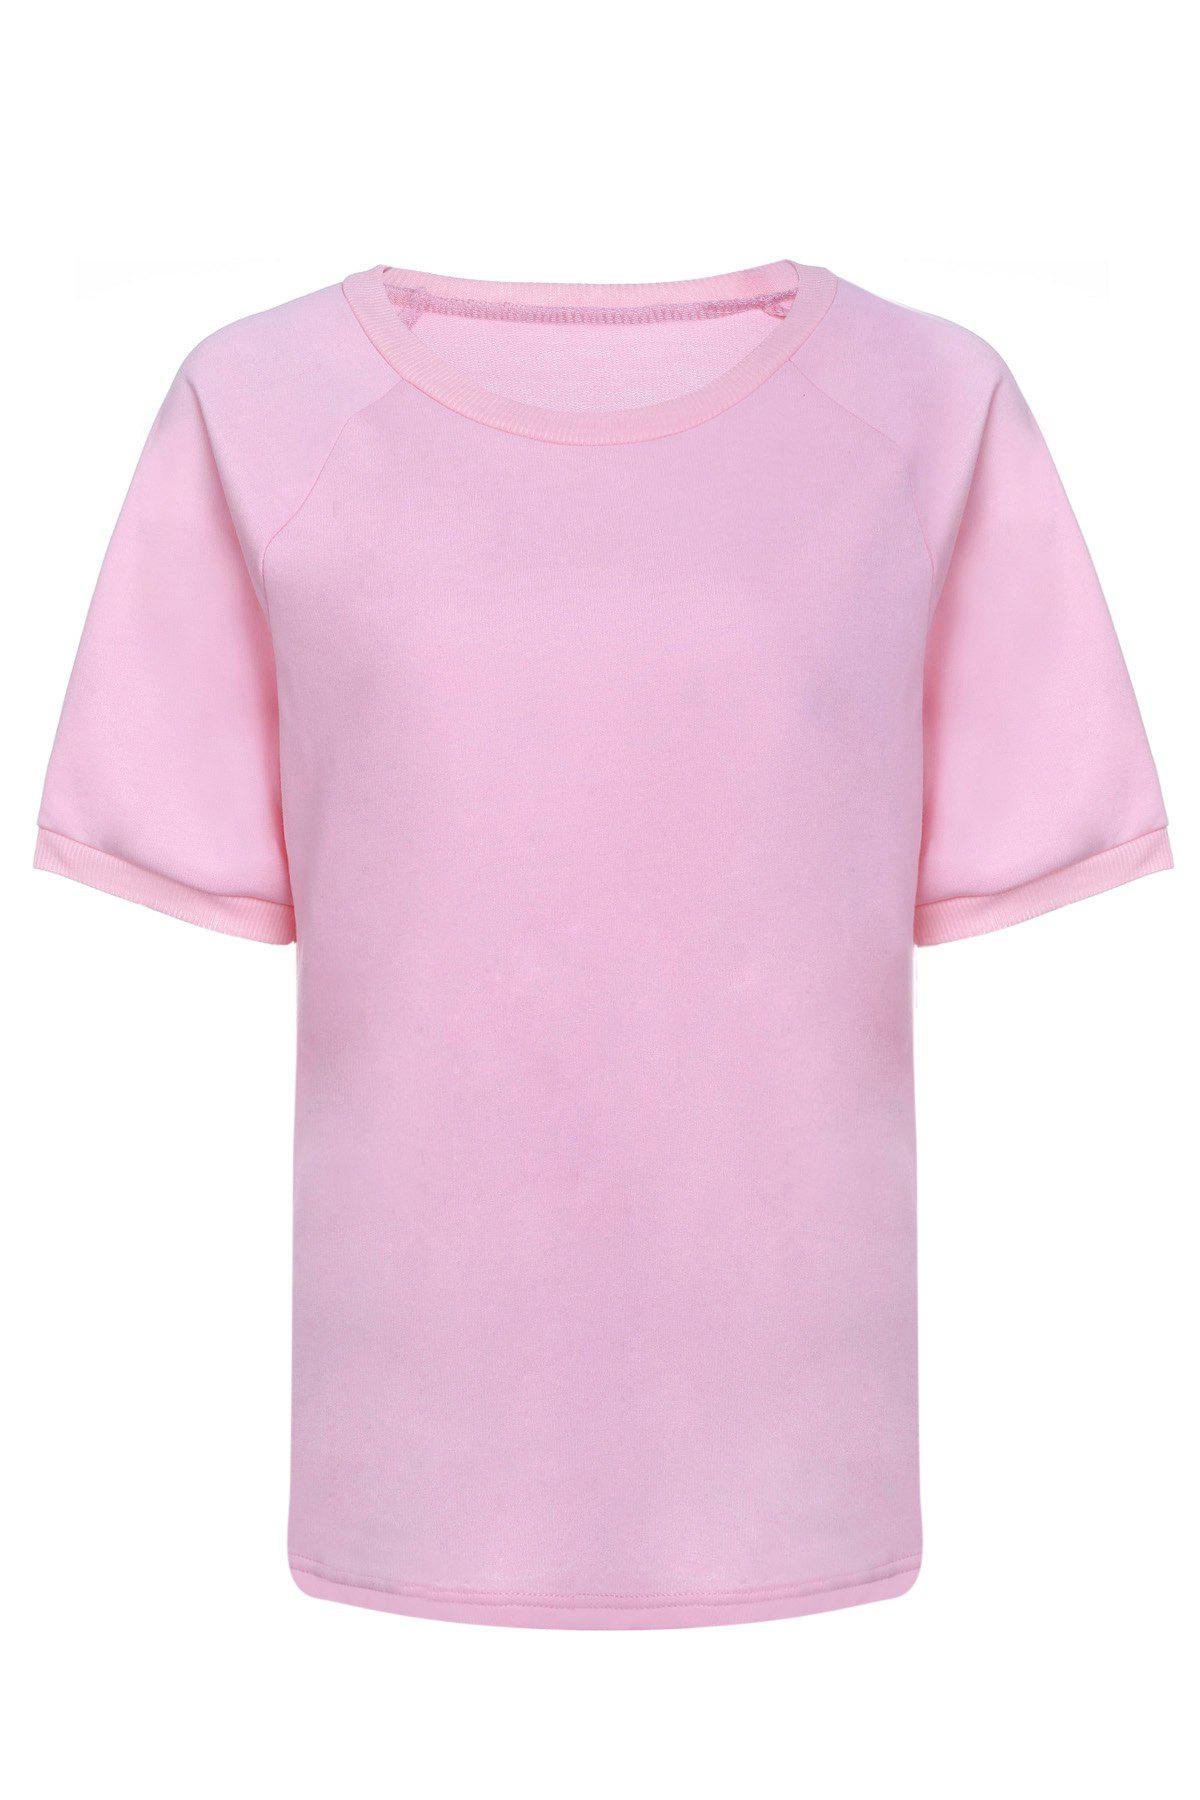 Fashionable Women's Round Neck Short Sleeve T-Shirt